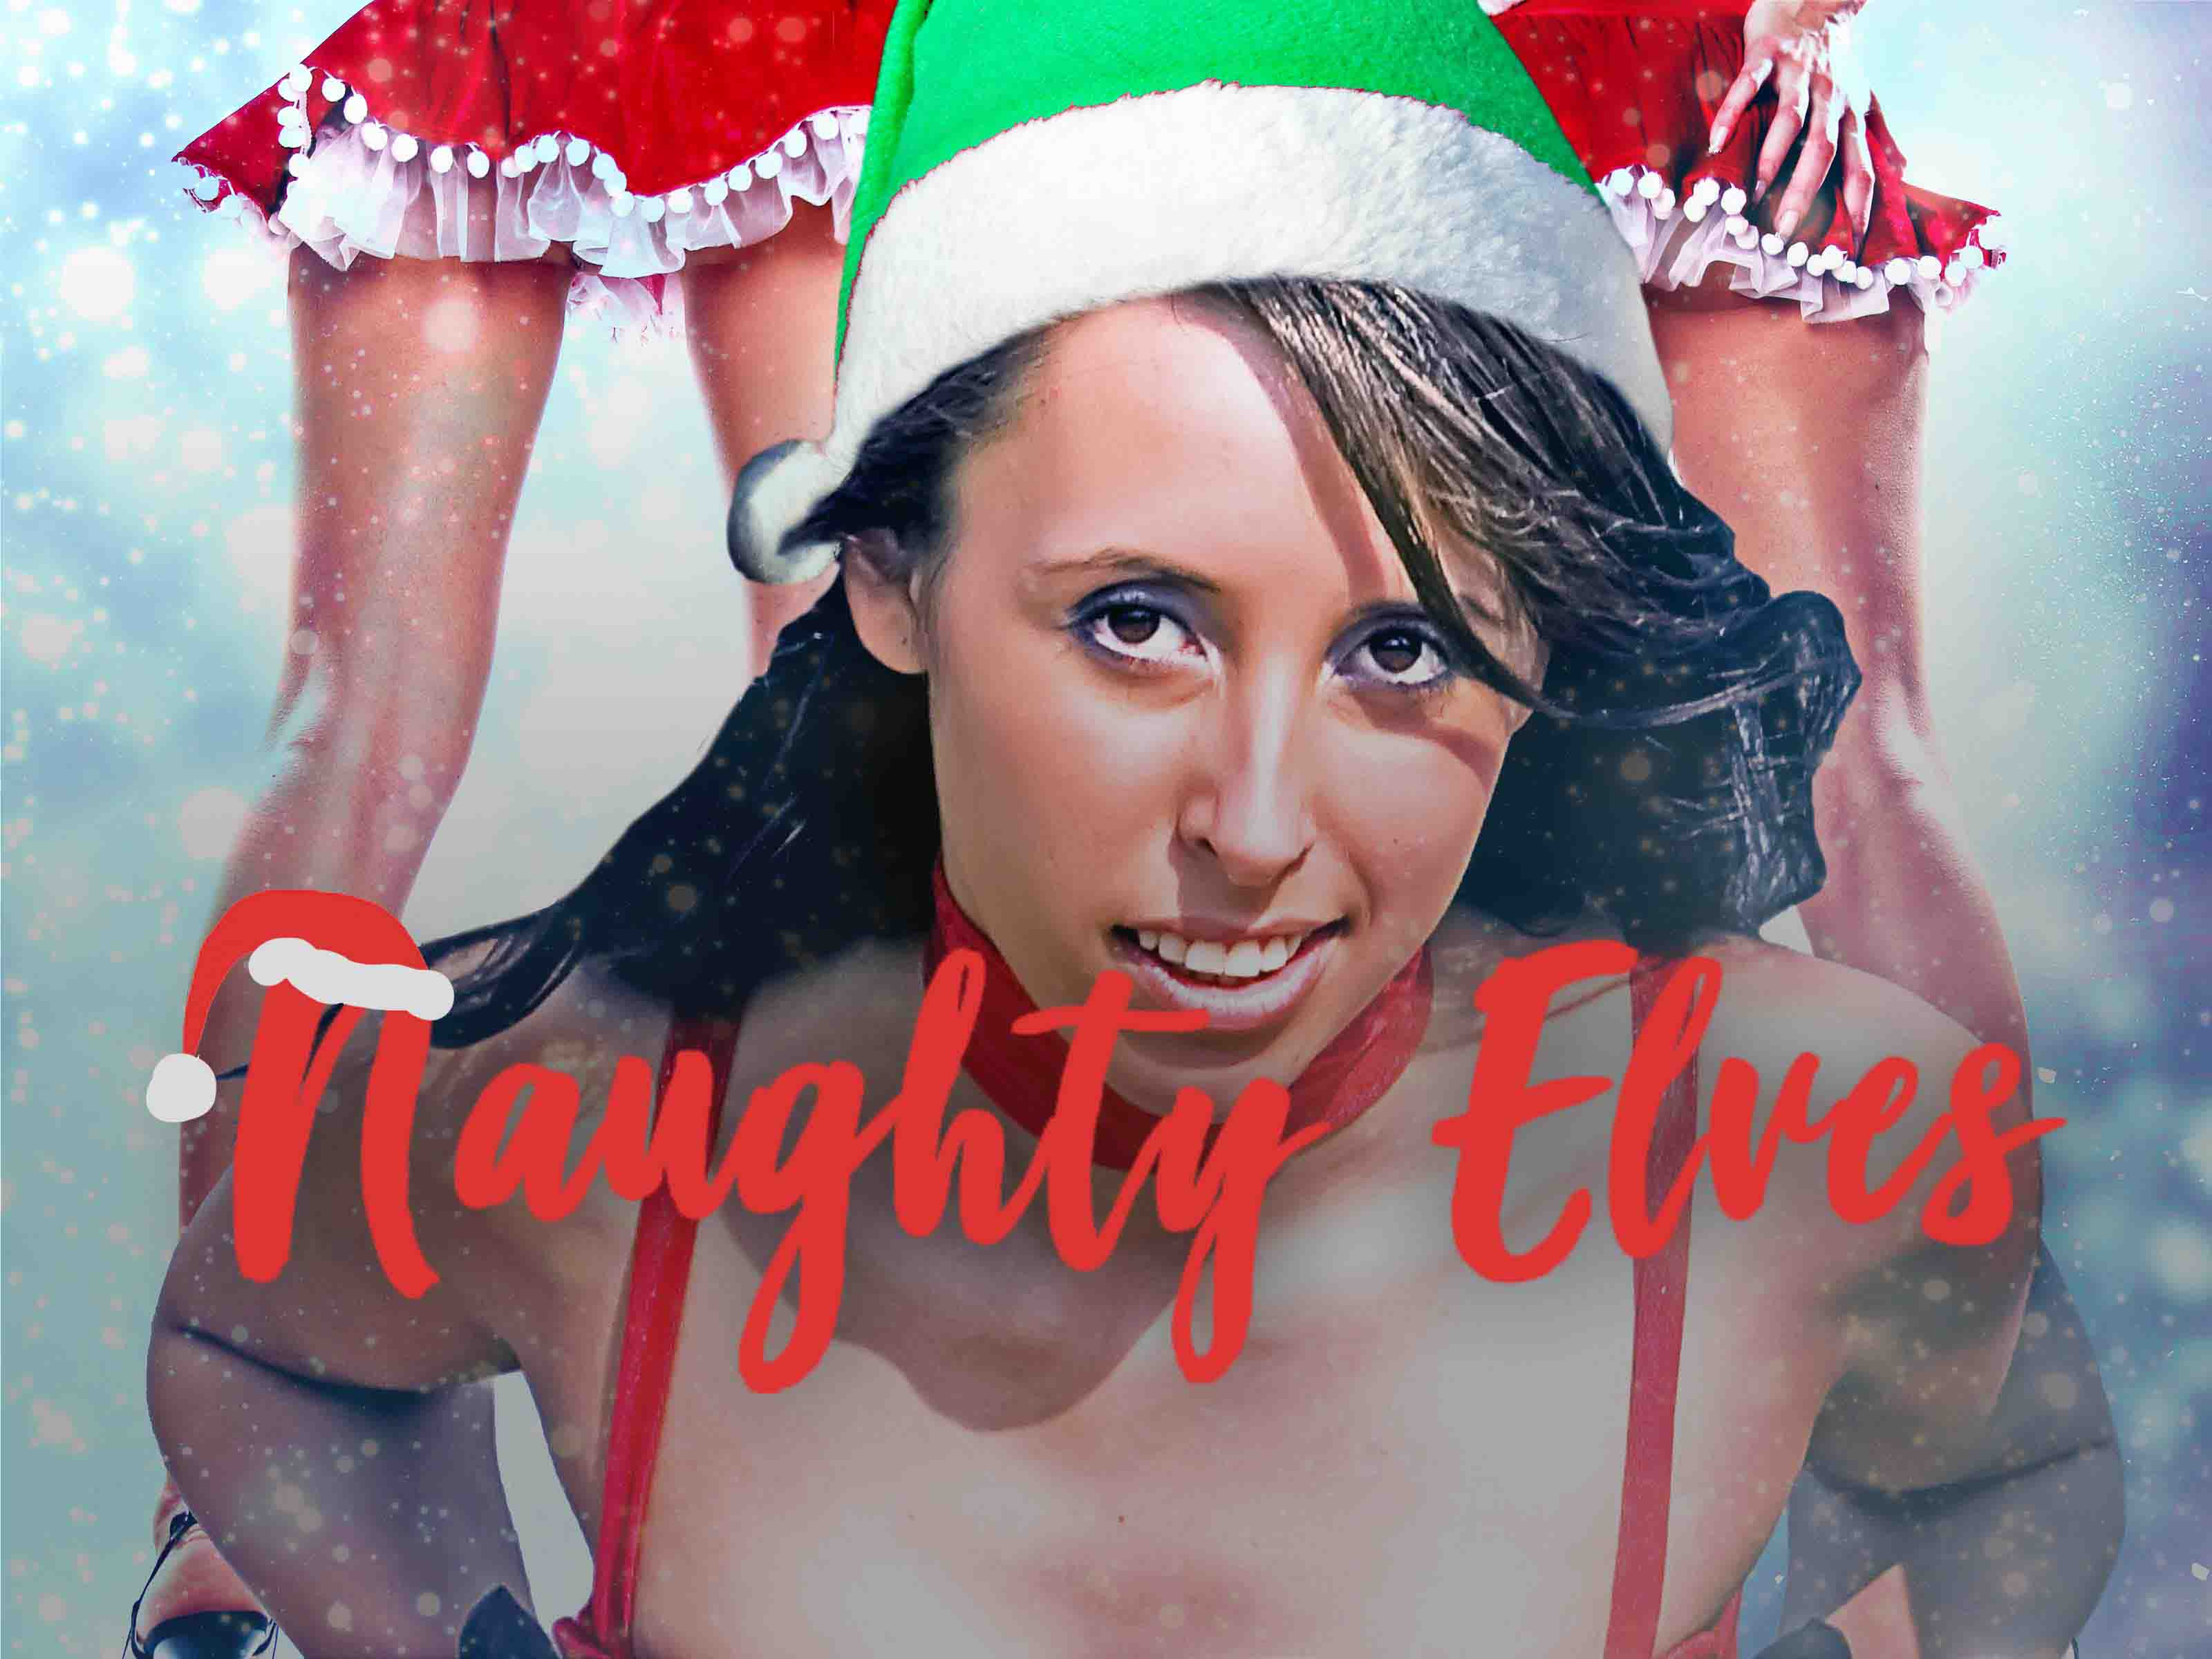 Hen Party Themes - Naughty Elves